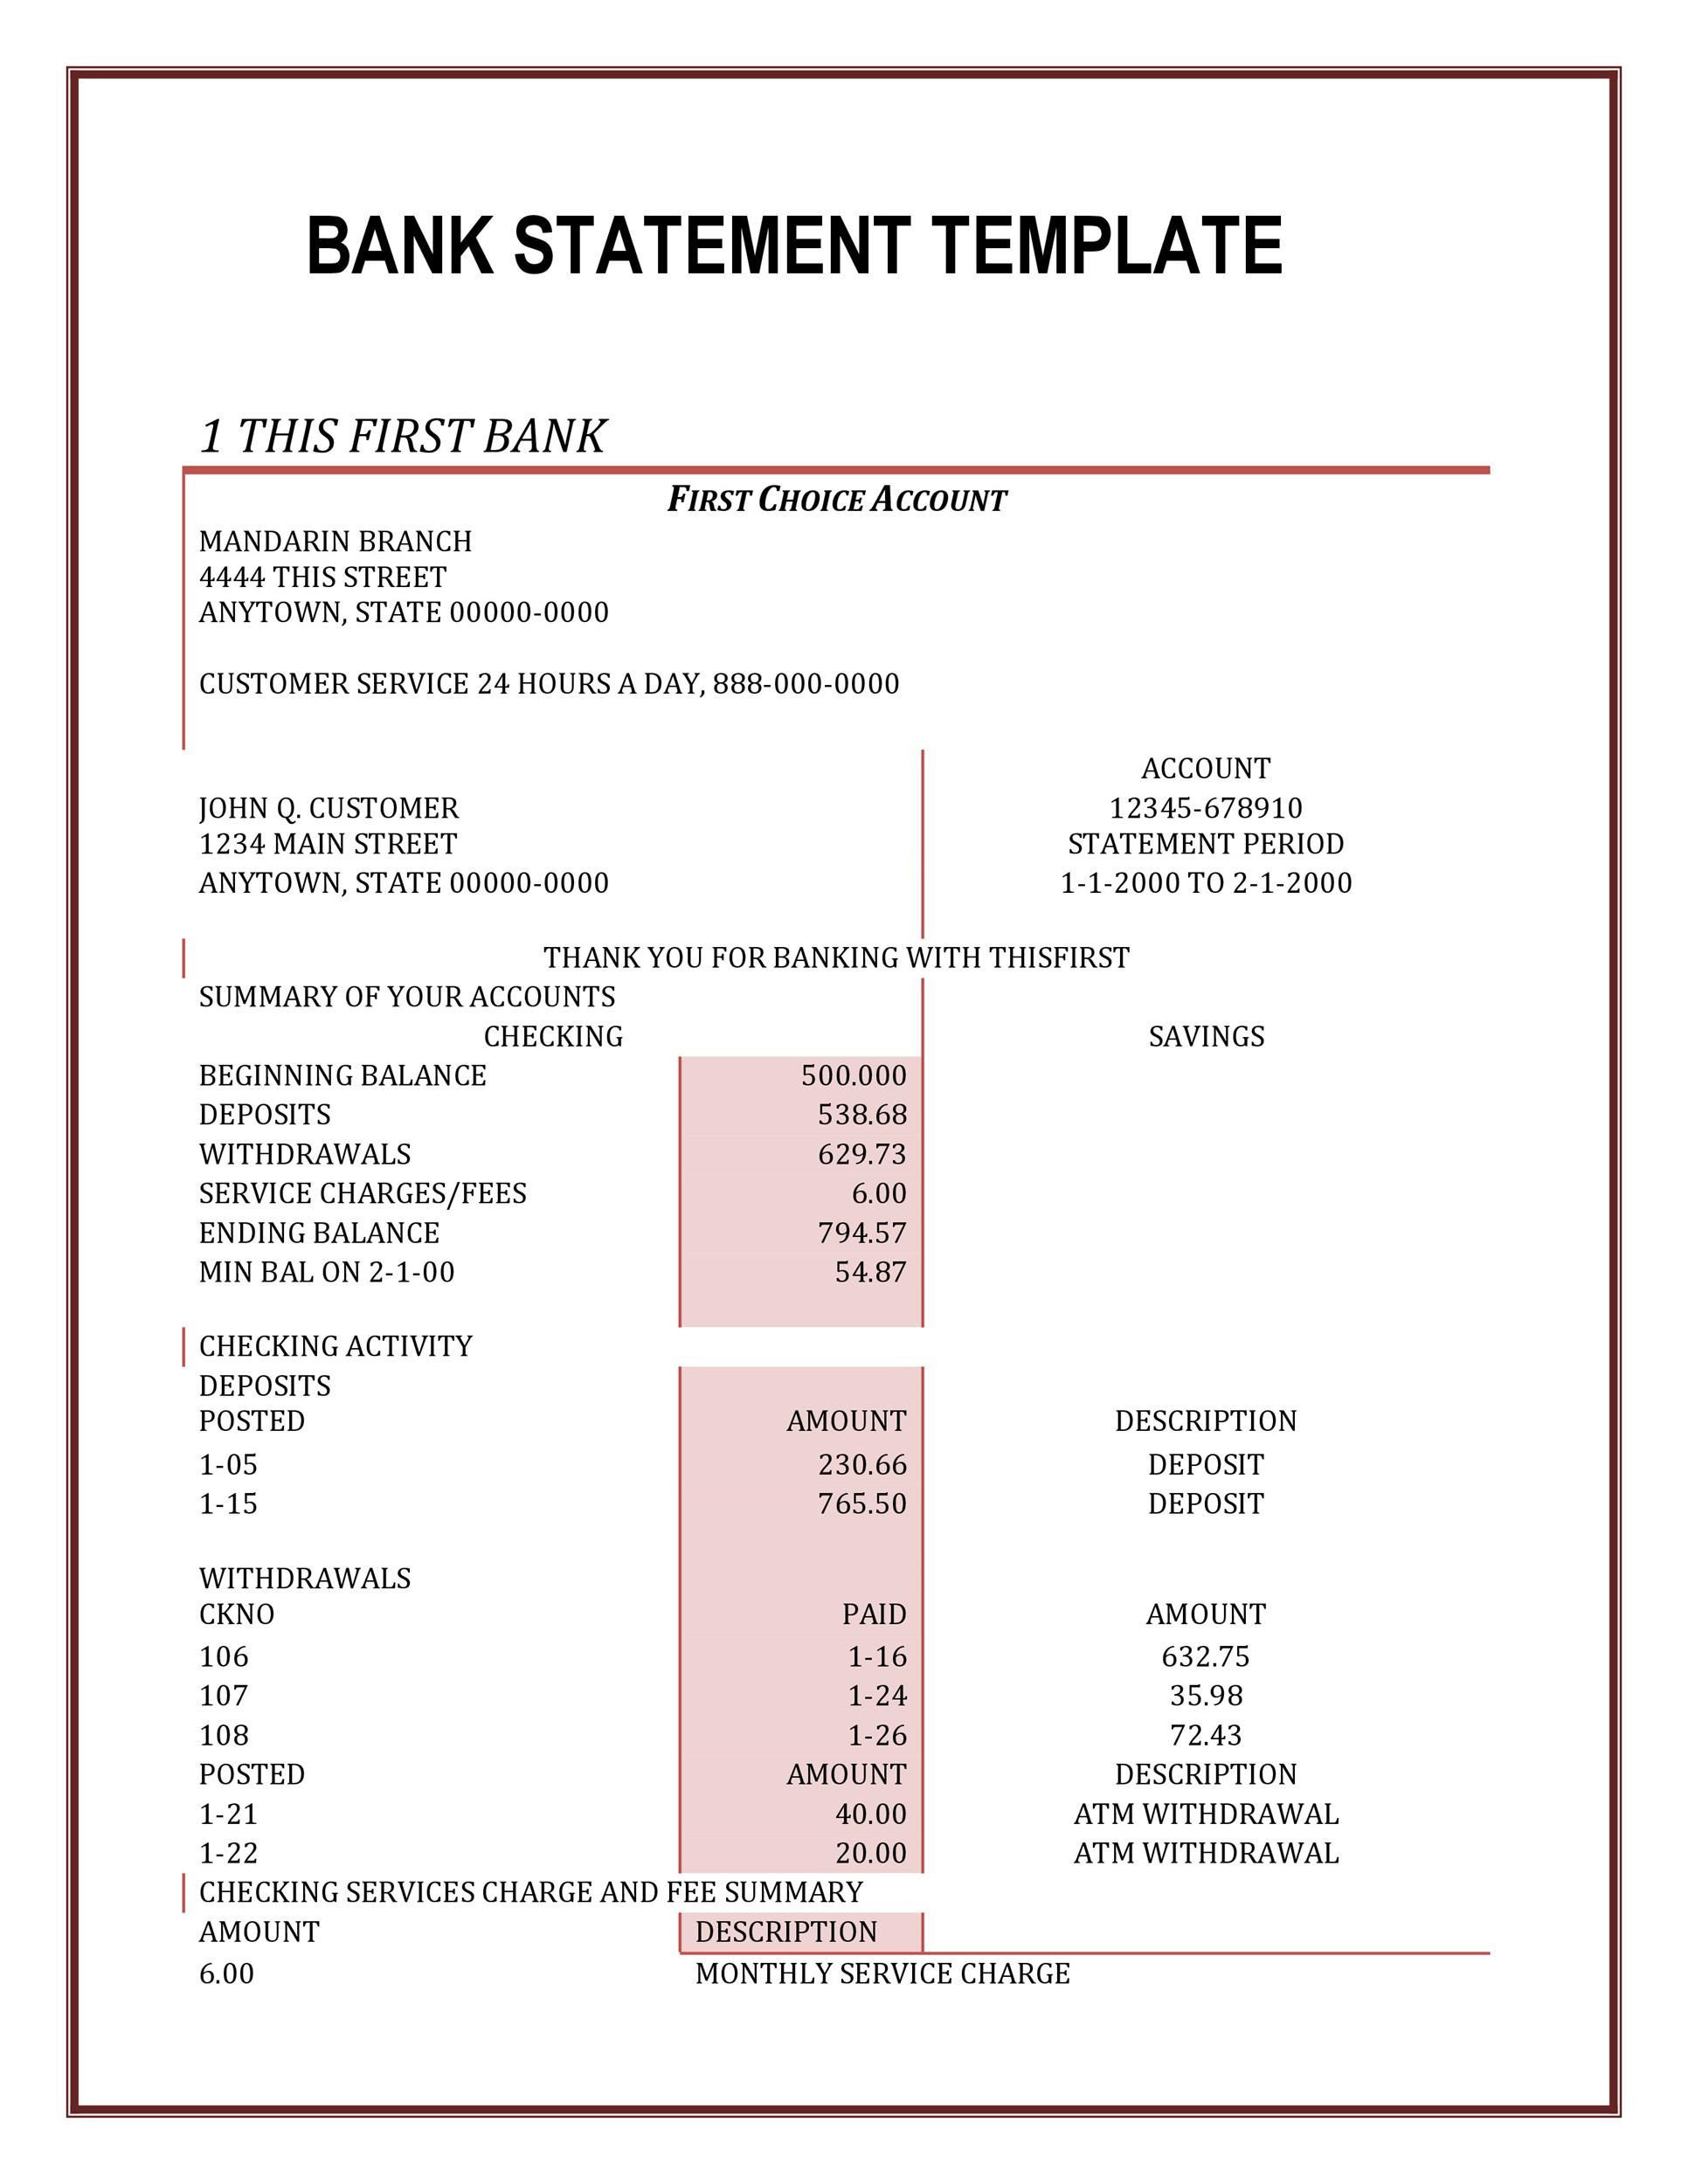 Fake Bank Statement Template